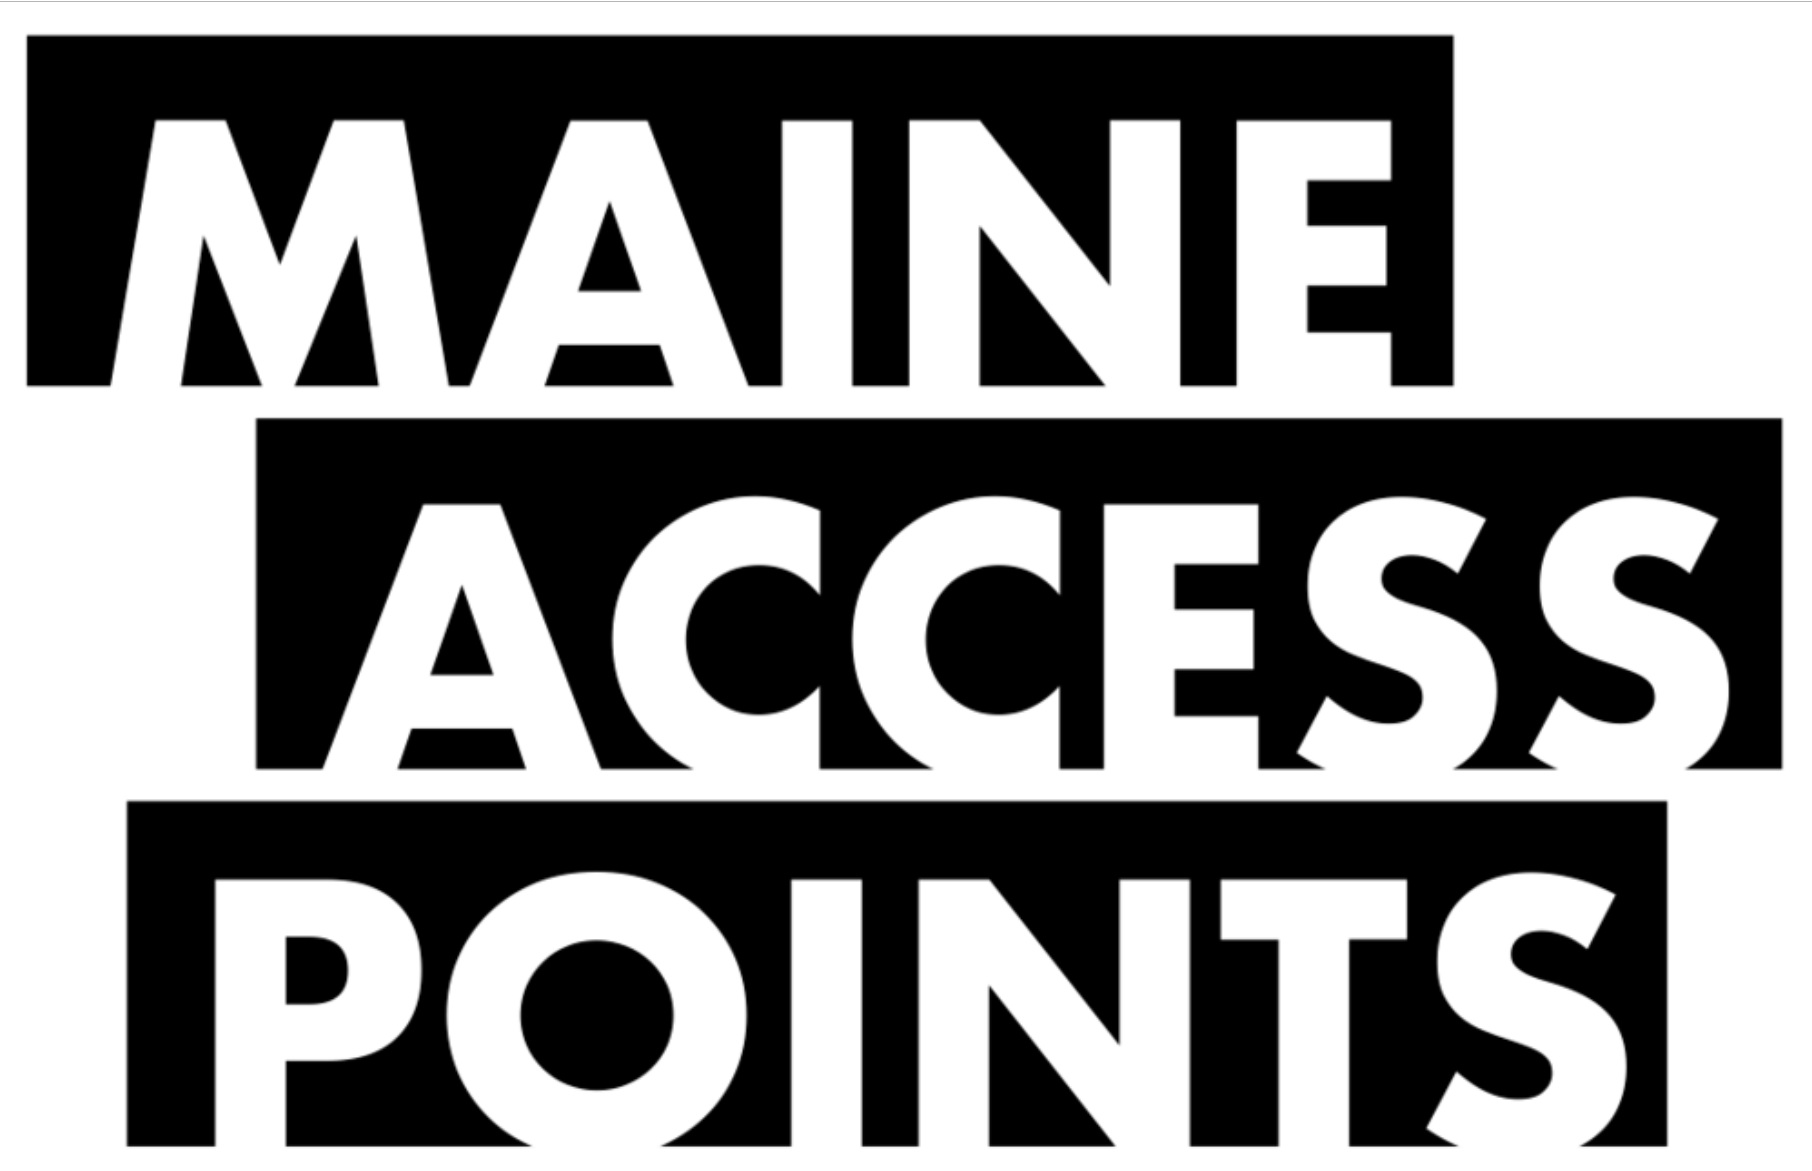 Maine access points - Maine Access Points was established in 2018 and provides community-based naloxone distribution across the state of Maine. MAP prioritizes naloxone distribution to people who use drugs, close friends and family. MAP works with local drug user communities, community-based agencies, and loved ones to build a network of accessible naloxone distribution, overdose prevention education, and aftercare.